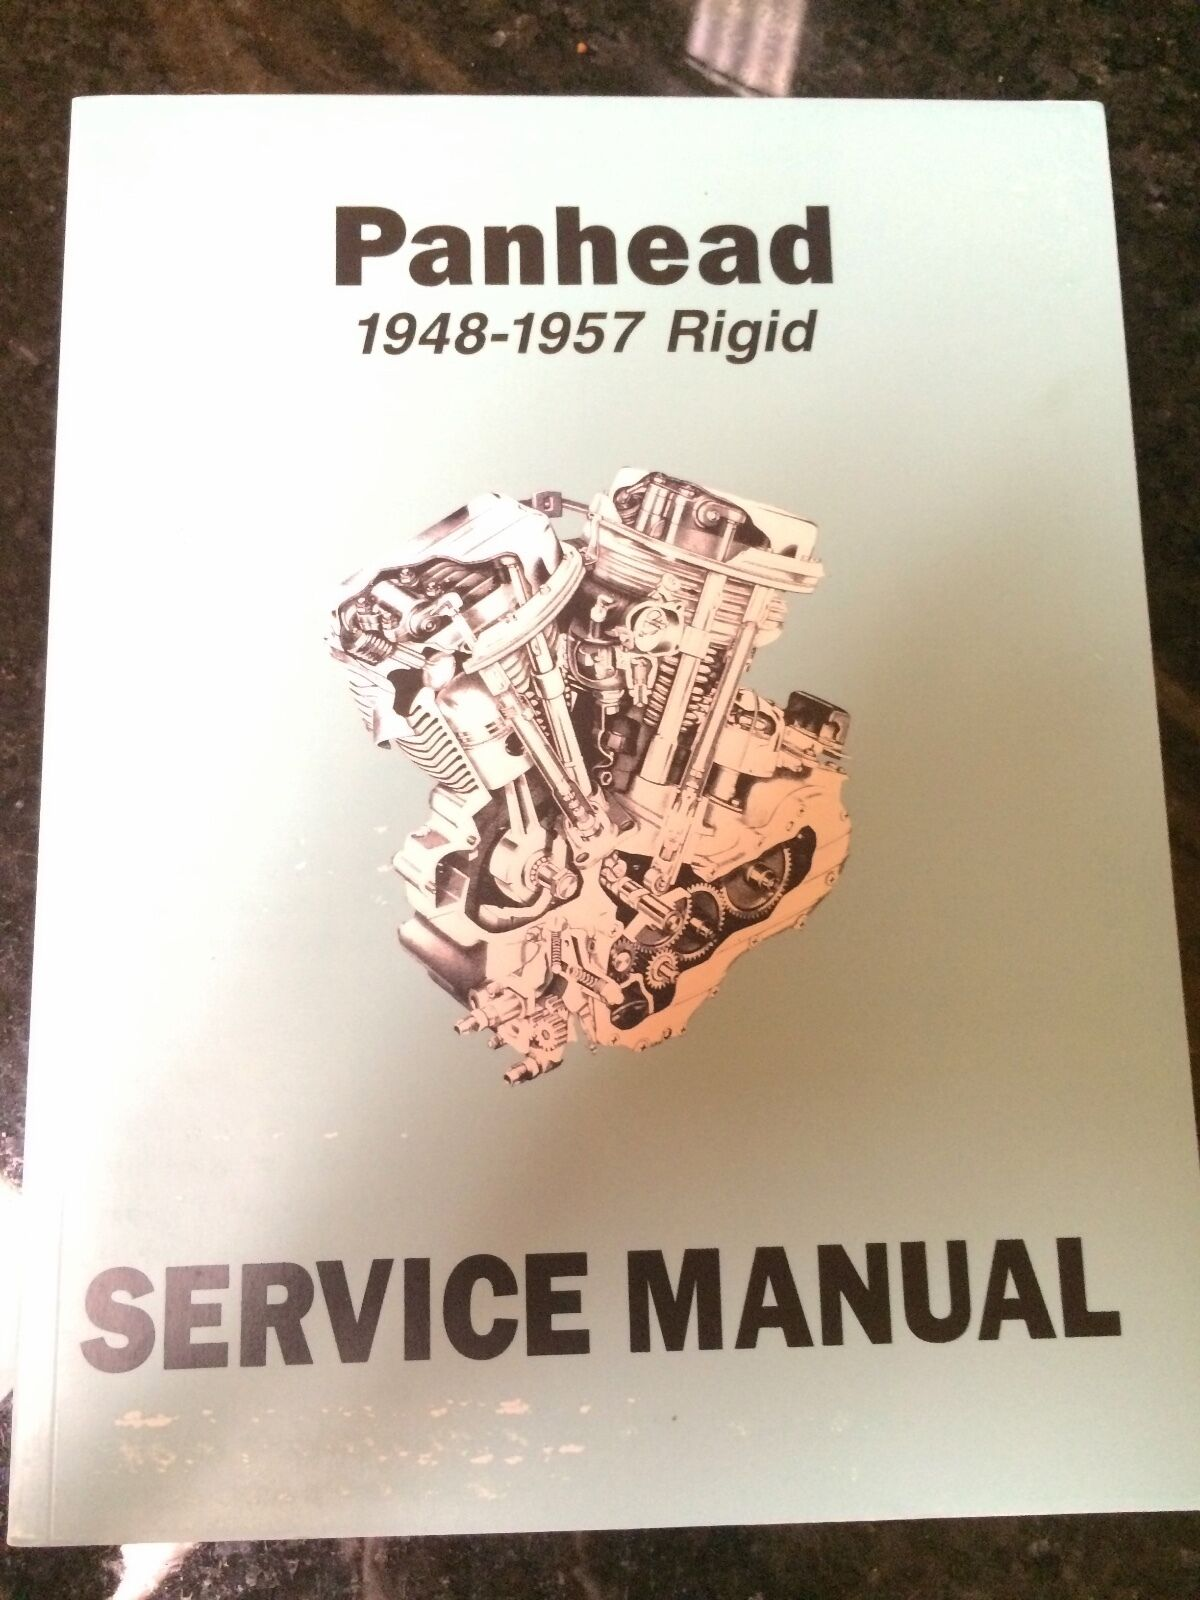 Harley El Fl Flh Service Manual 1948 To 1957 Panhead Rigid Hydra. 1 Of 5only 3 Available. Wiring. 1961 Panhead Wiring Schematic At Scoala.co